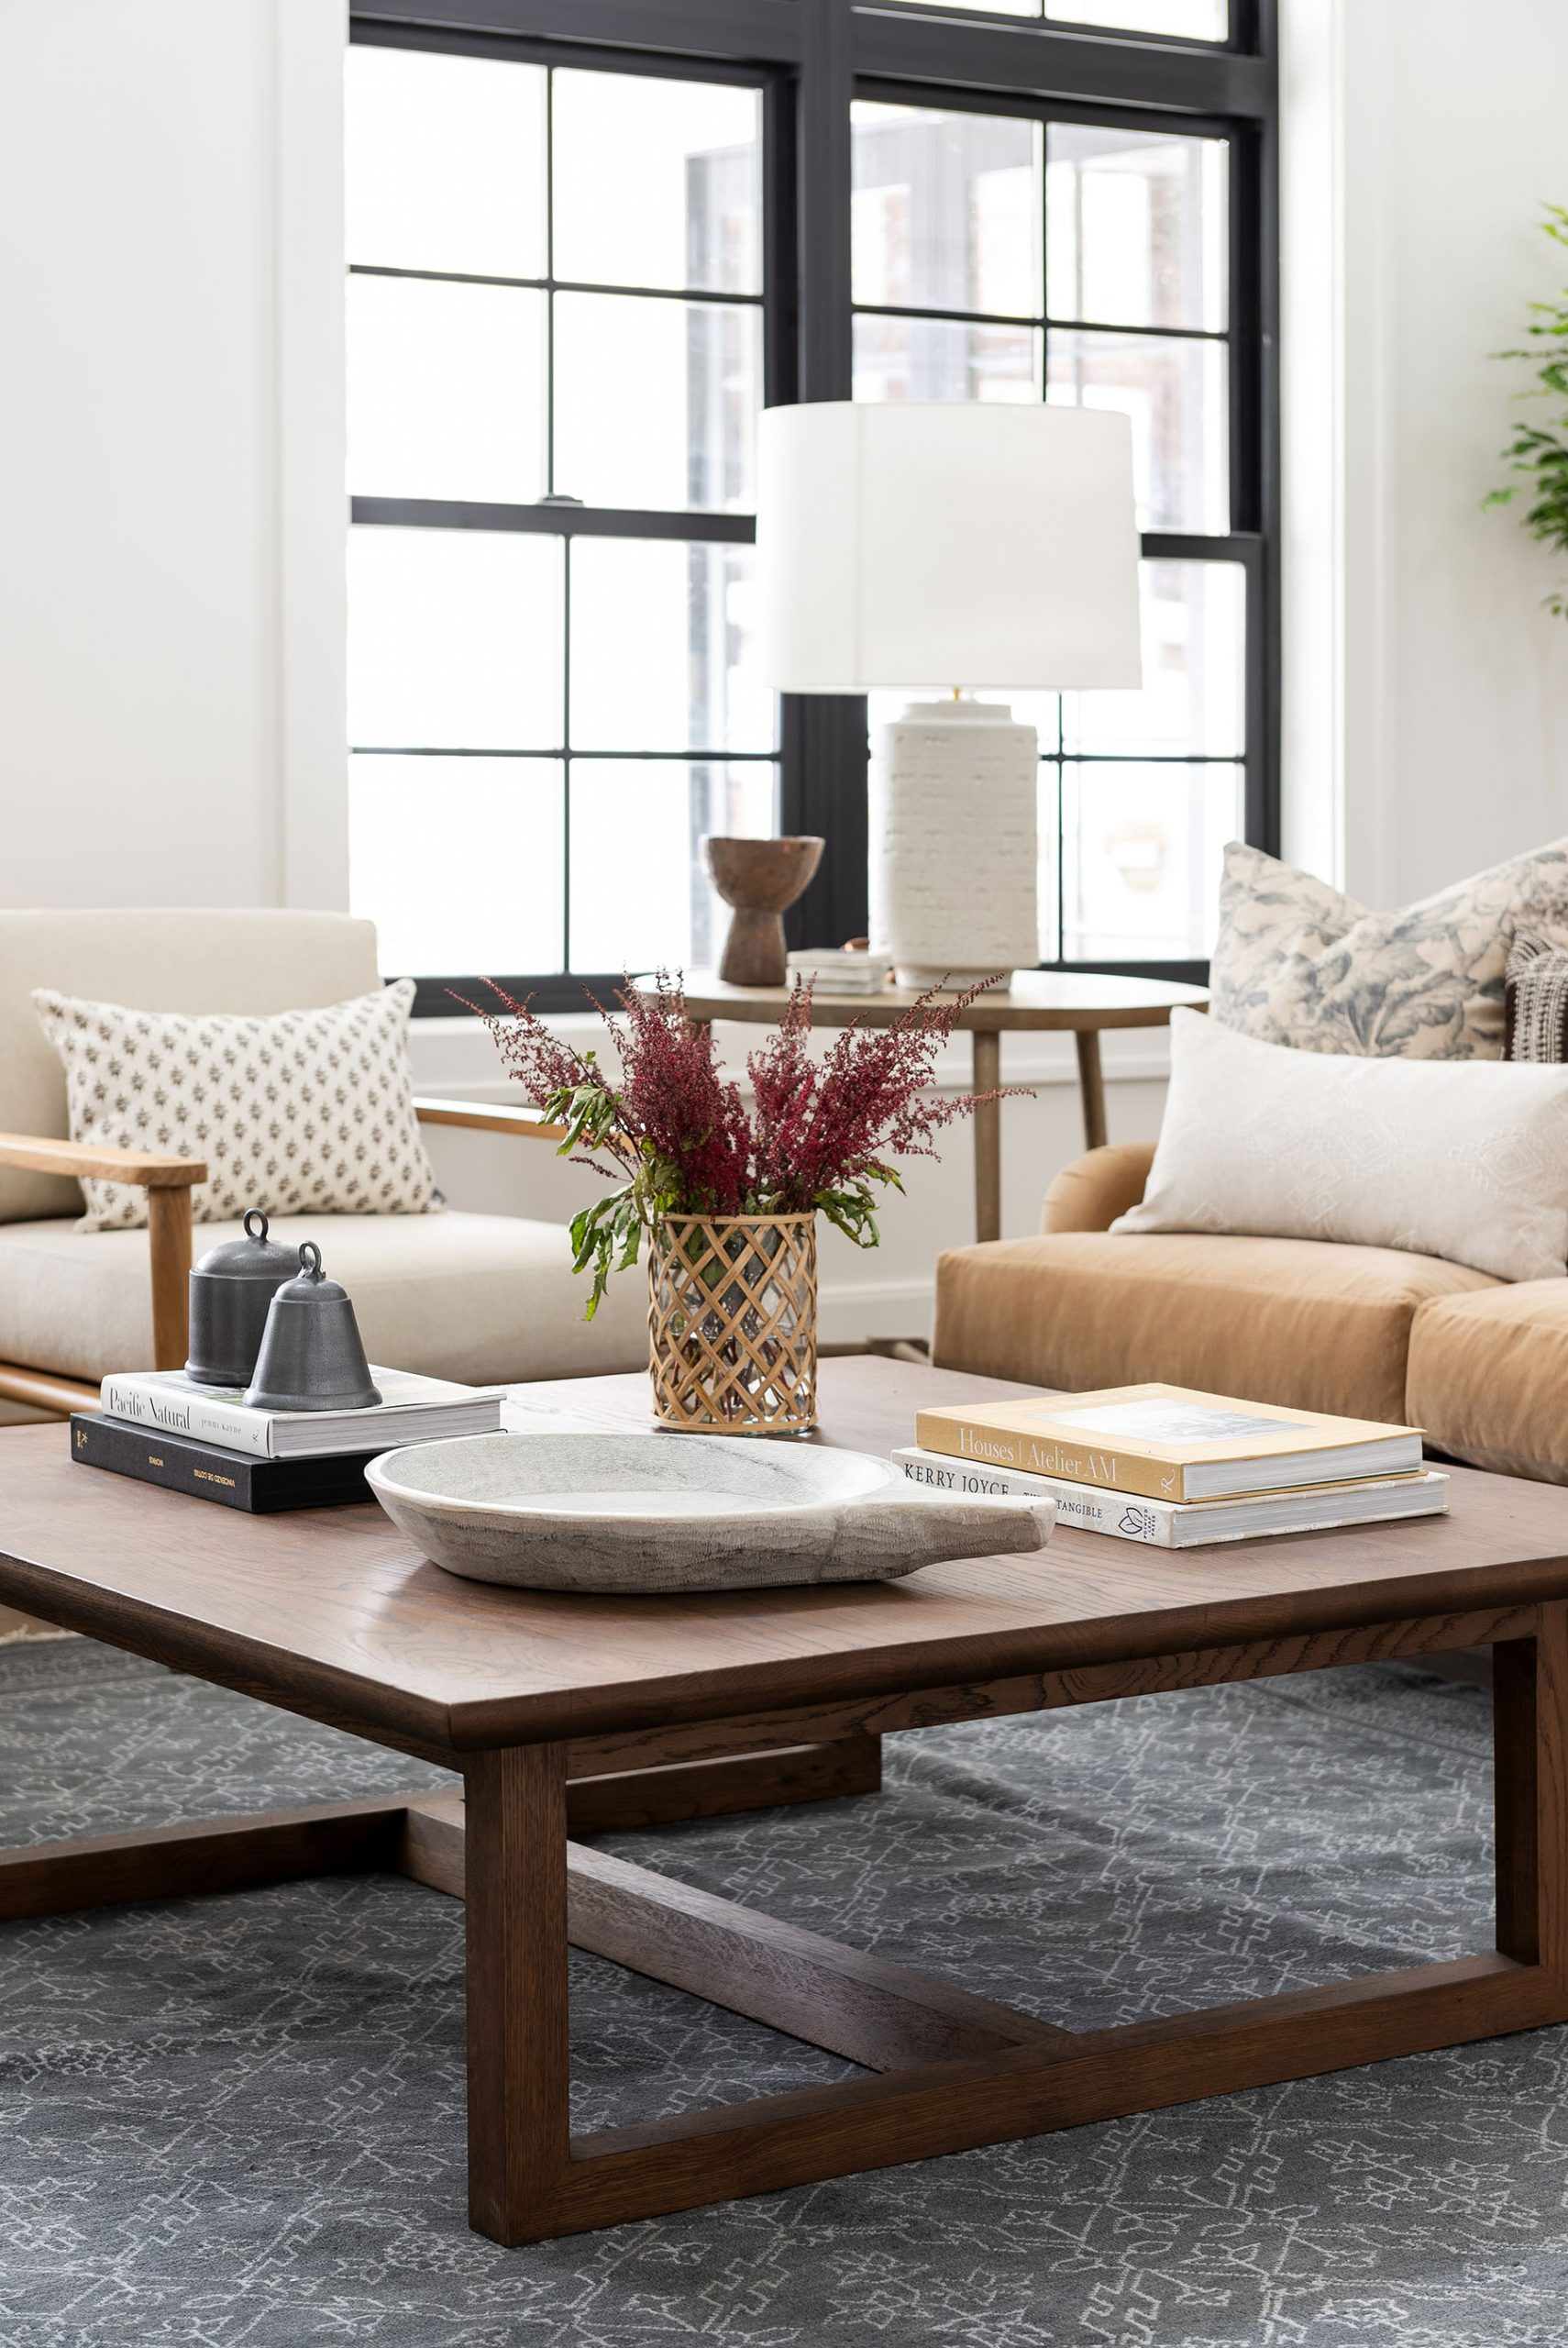 How to Style Square or Rectangular Coffee Table